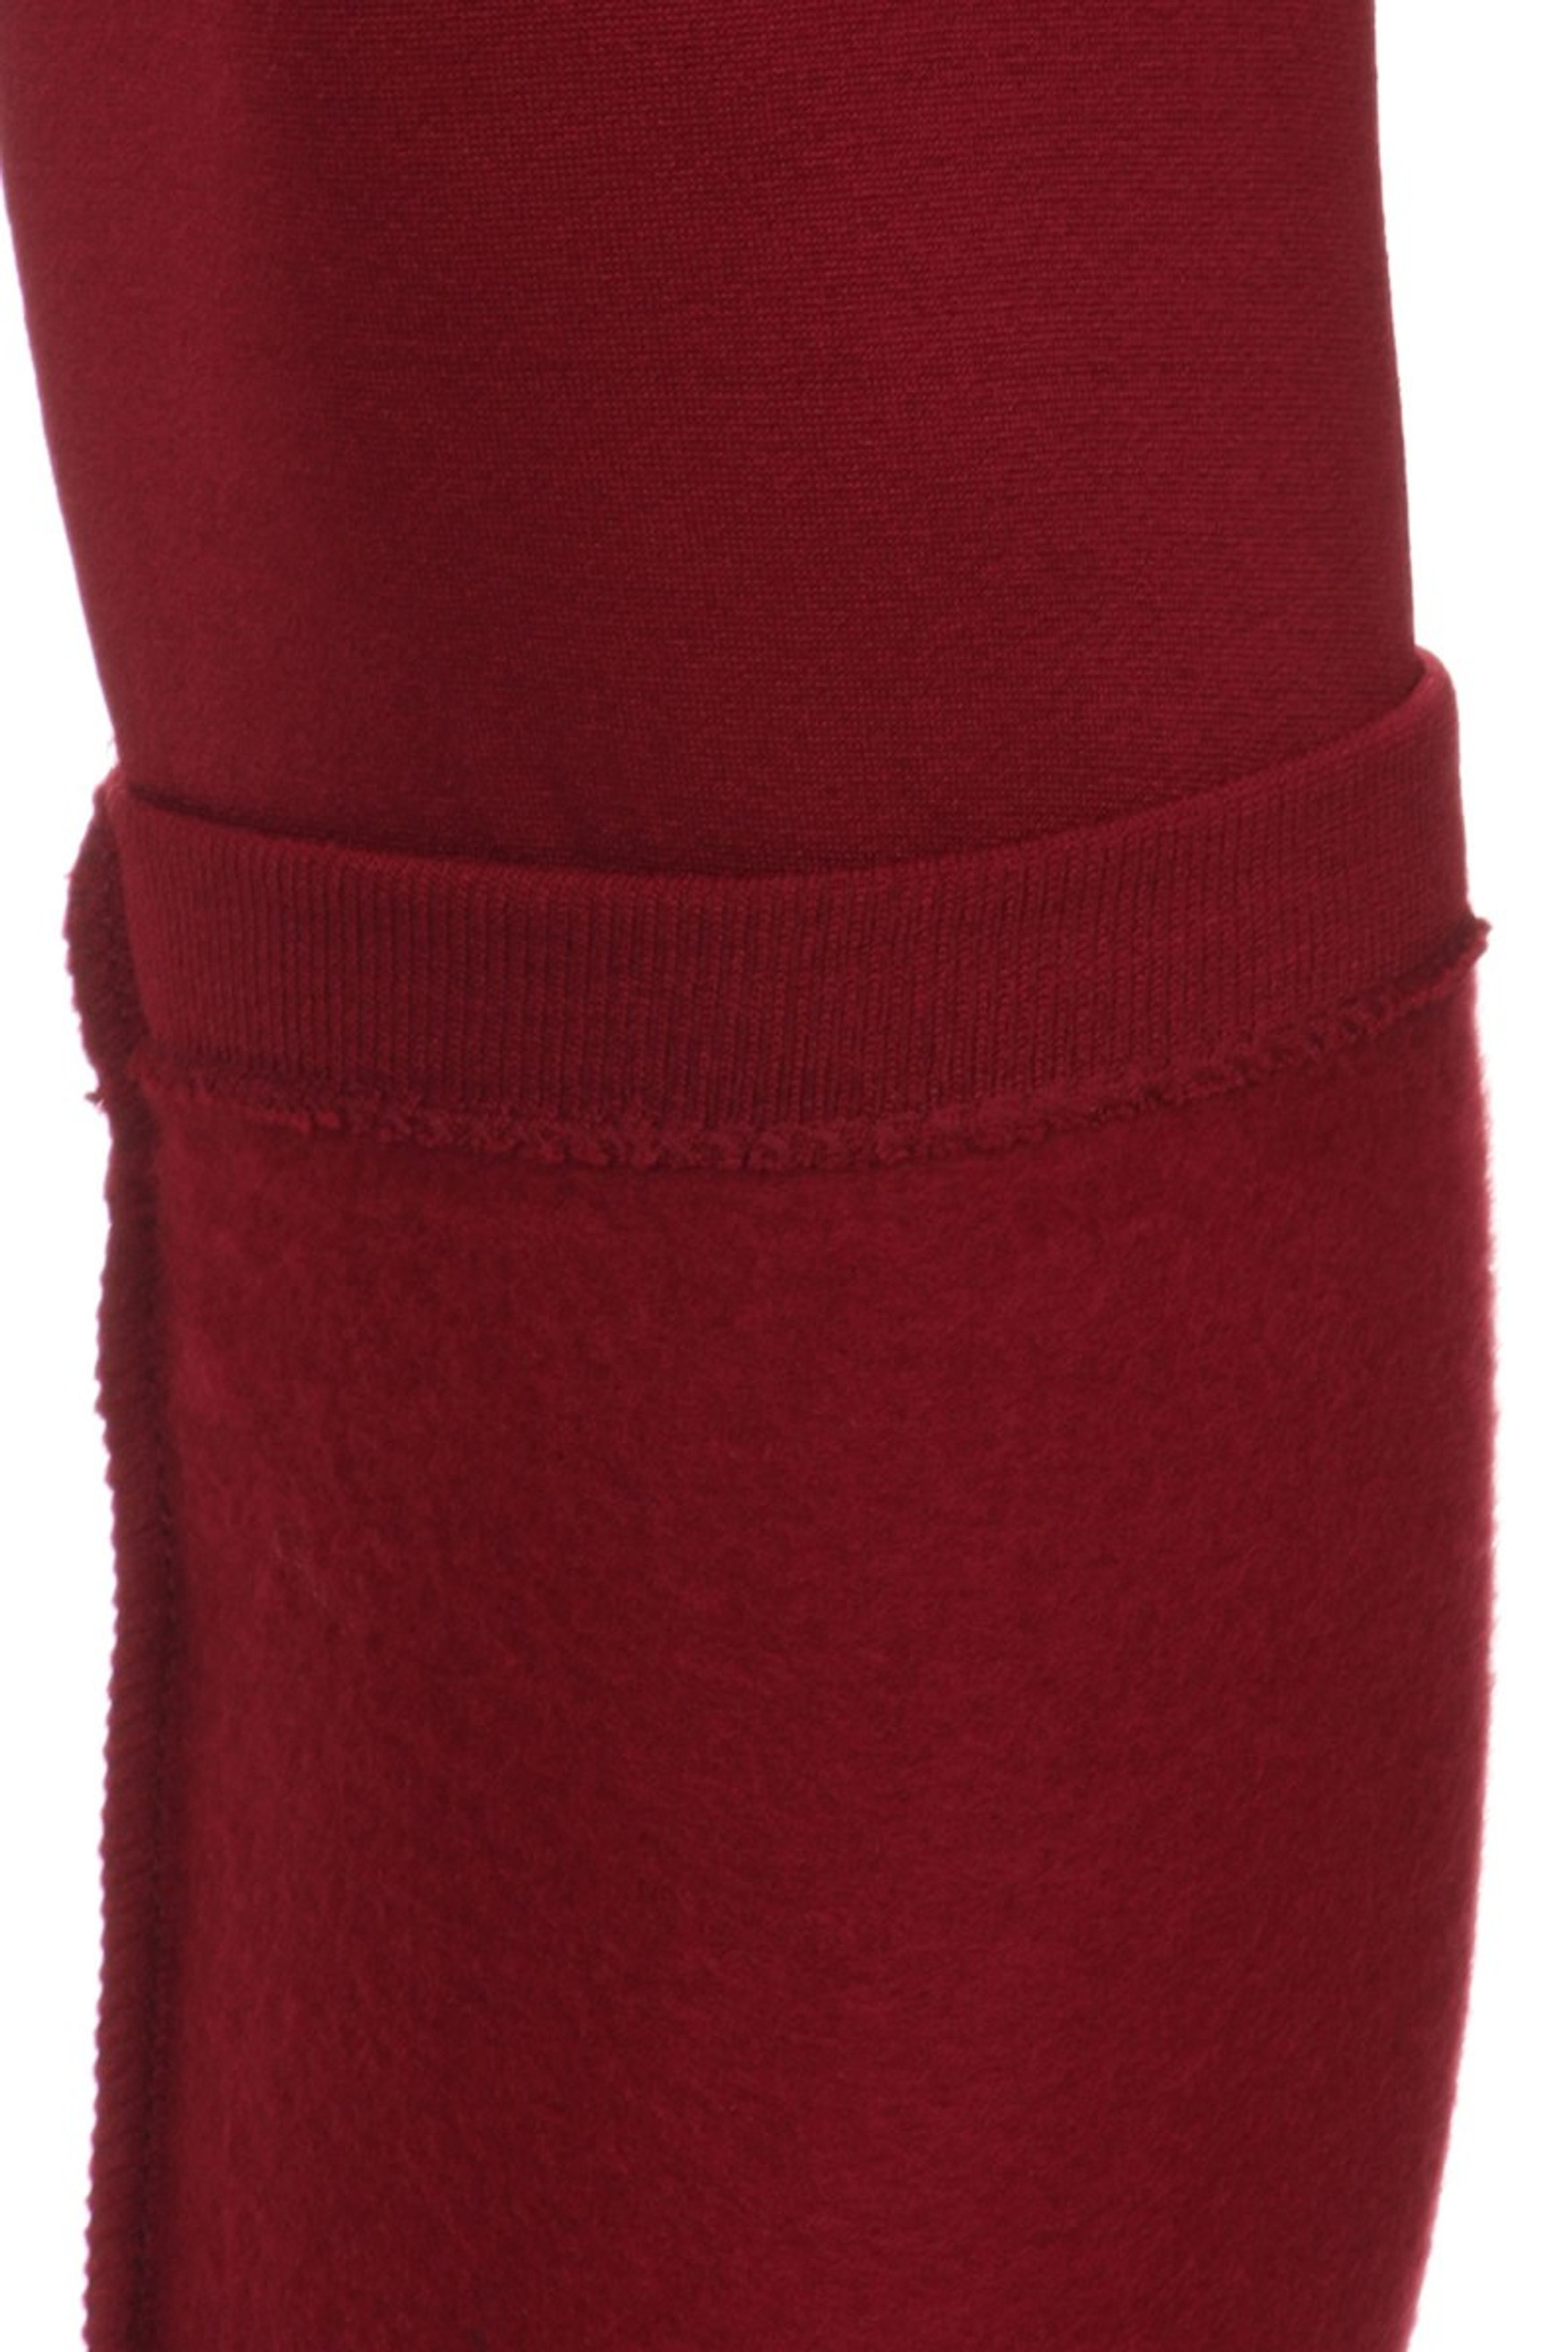 close-up image of a Burgundy Banded High Waisted Fleece Lined Legging of the calf showing the legging inside detailing the inner fleece lining and trim stitching.